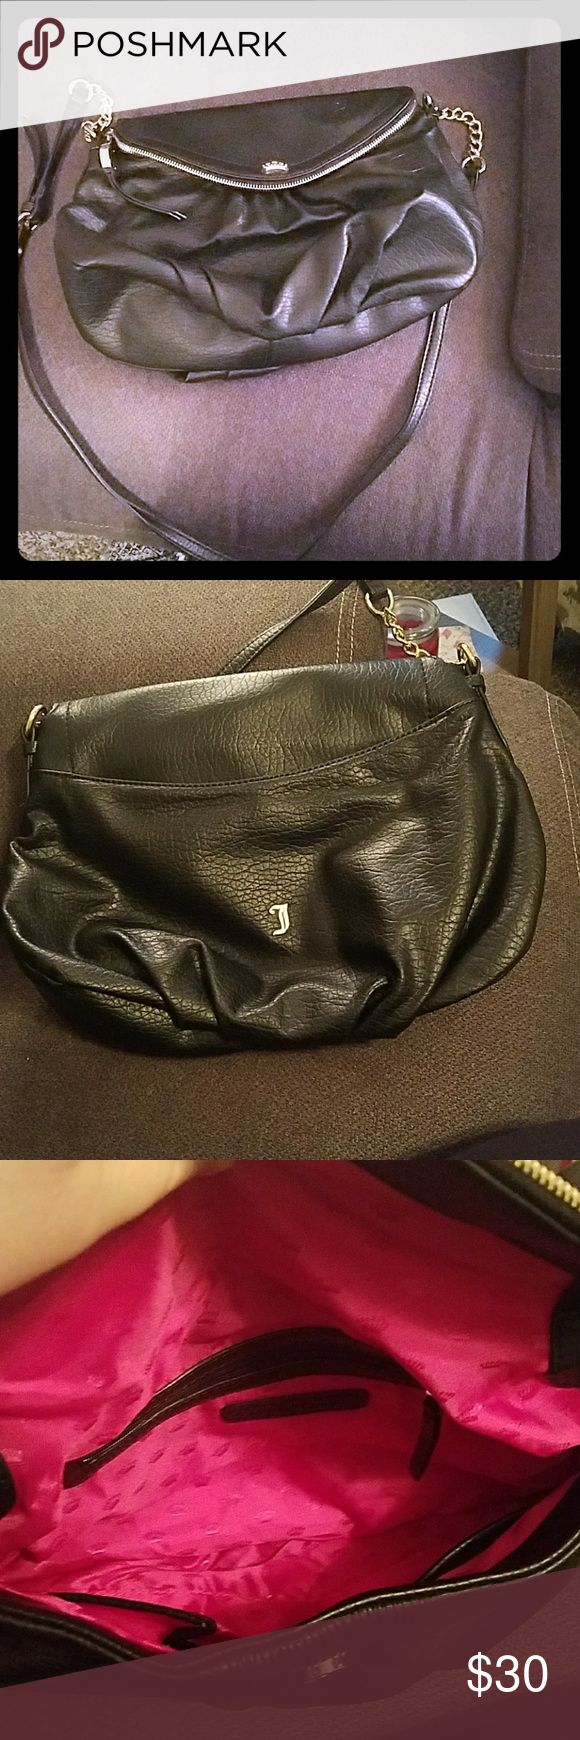 Juicy Couture black crossbody Juicy Couture purse lightly used. Juicy Couture Bags Crossbody Bags